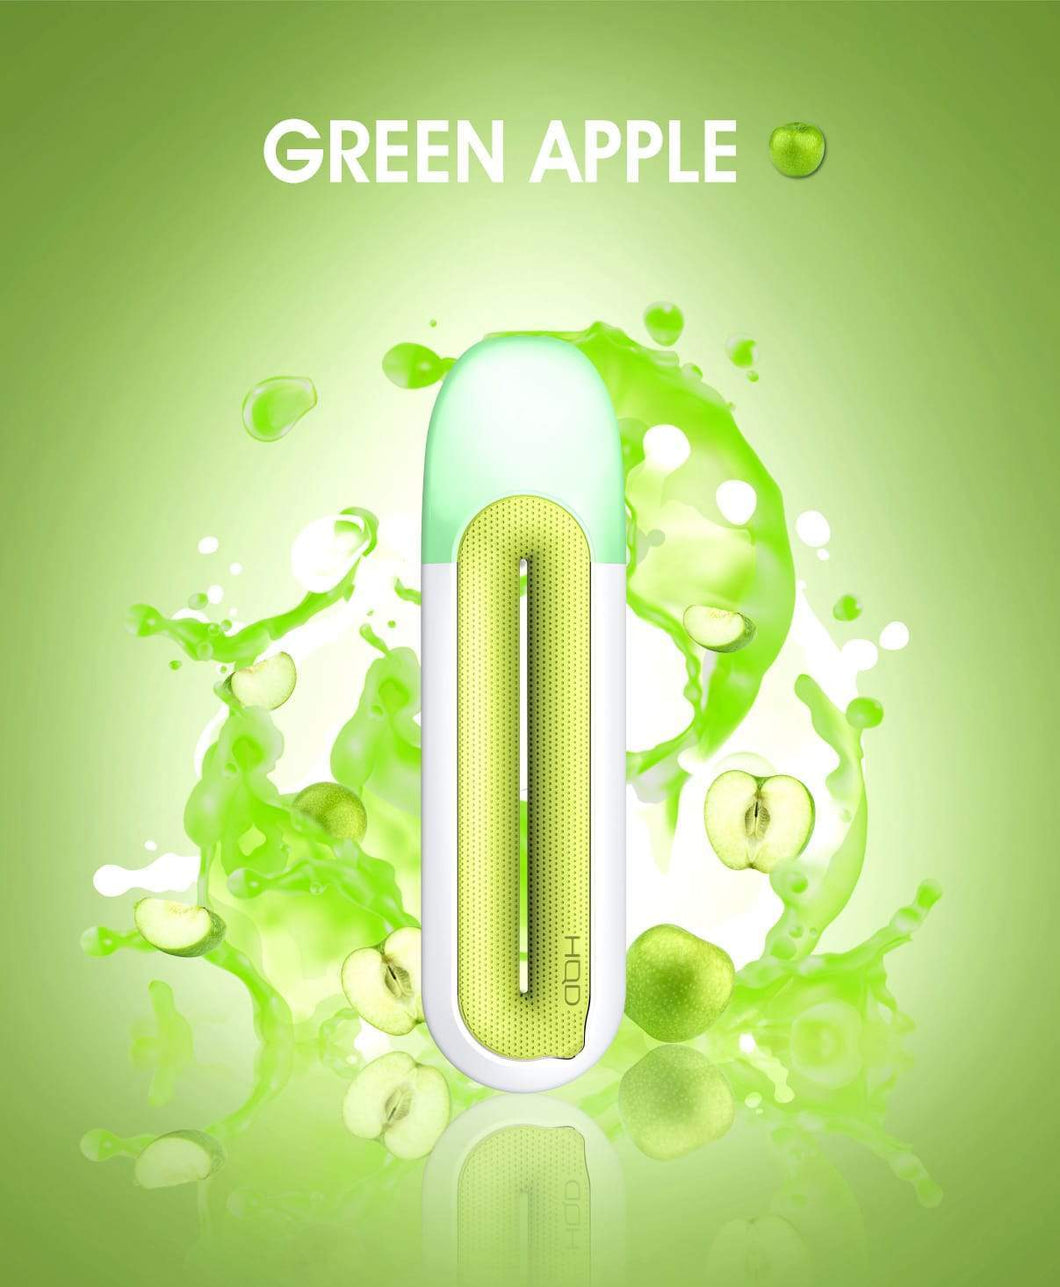 HQD Rosy - Green Apple - yummystig.com